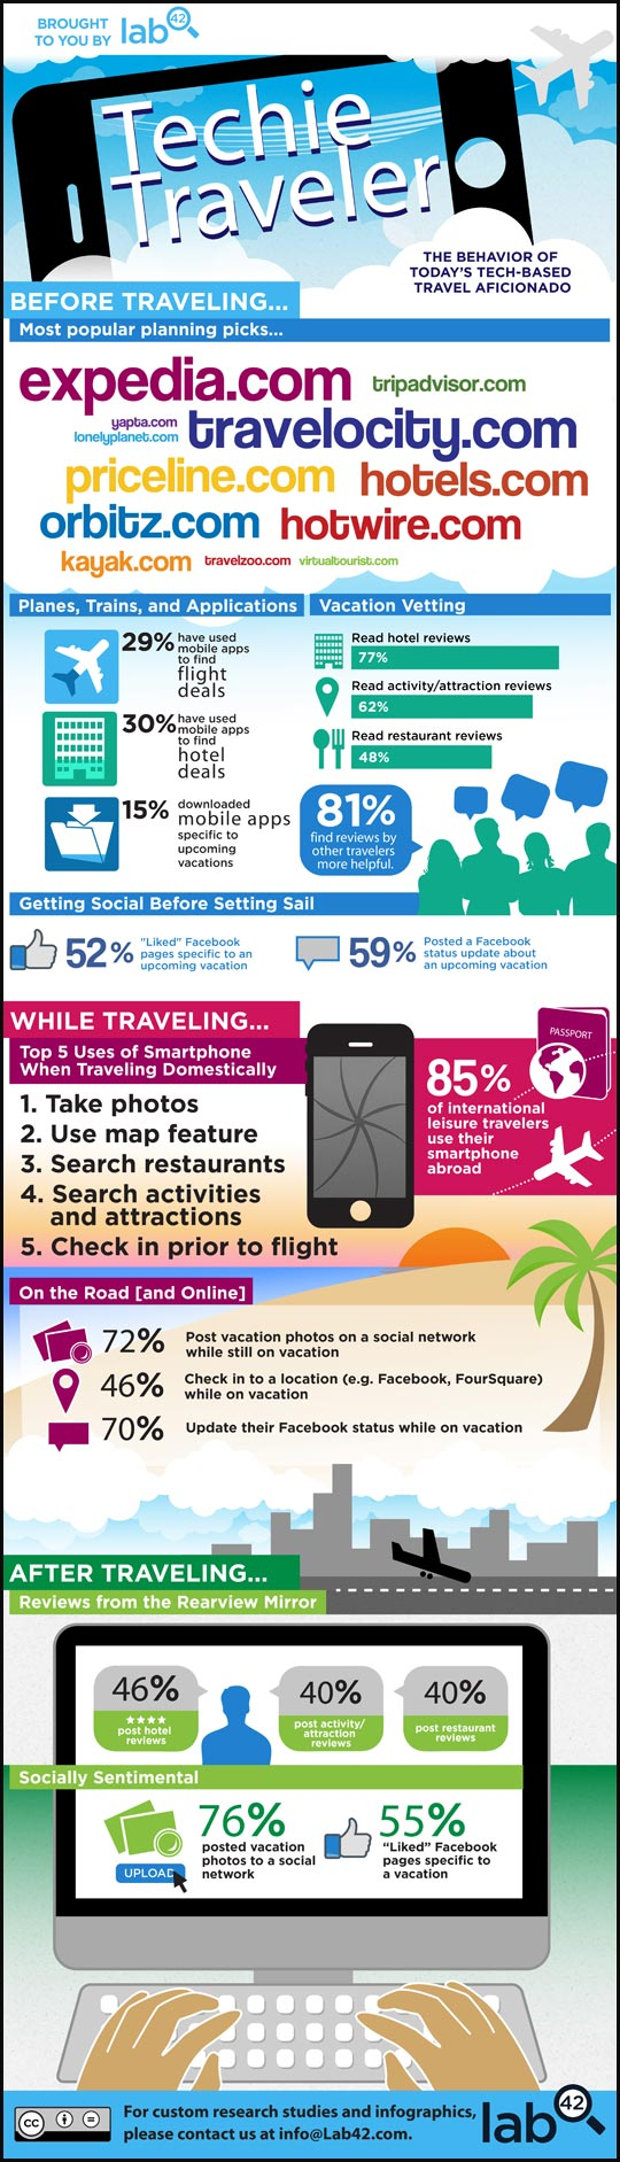 Techie traveler infographic by Lab 42